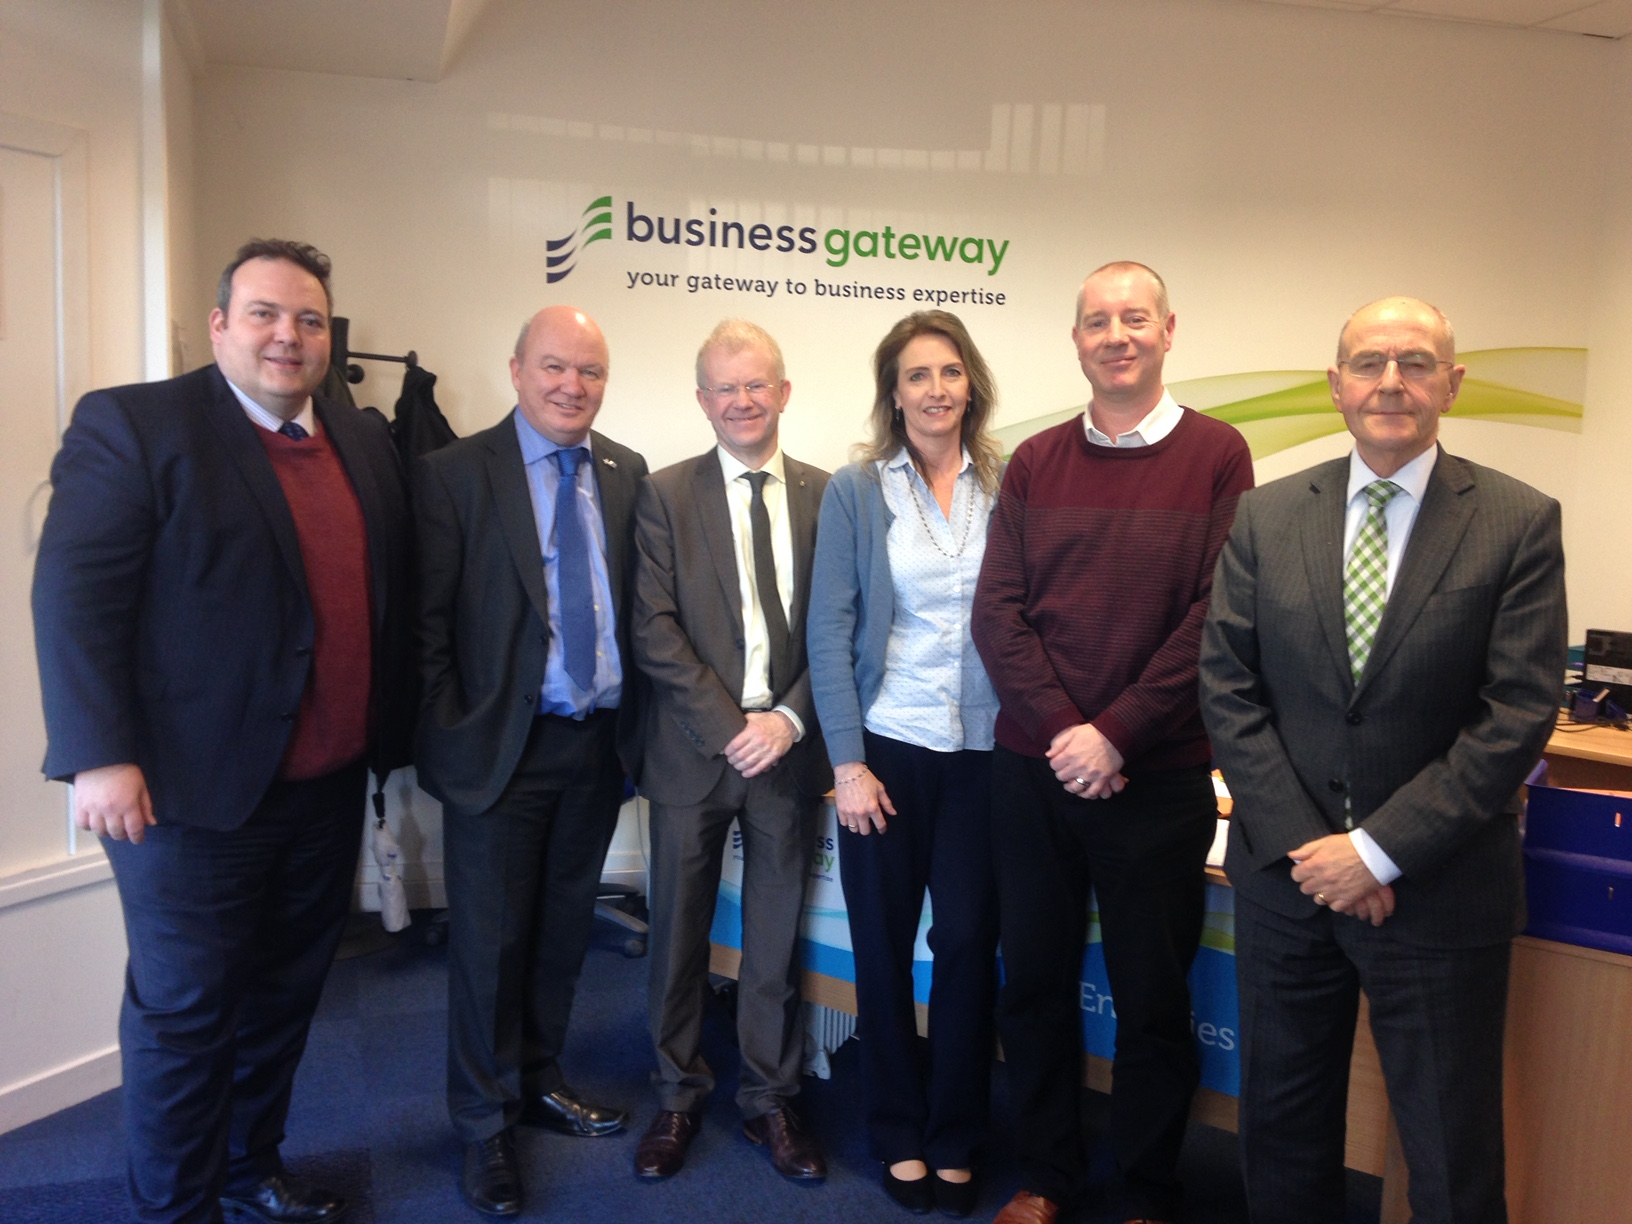 Jamie Halcro Johnston, John Mason and Gordon MacDonald visited Business Gateway Inverness as part of the Committee's Highland visit